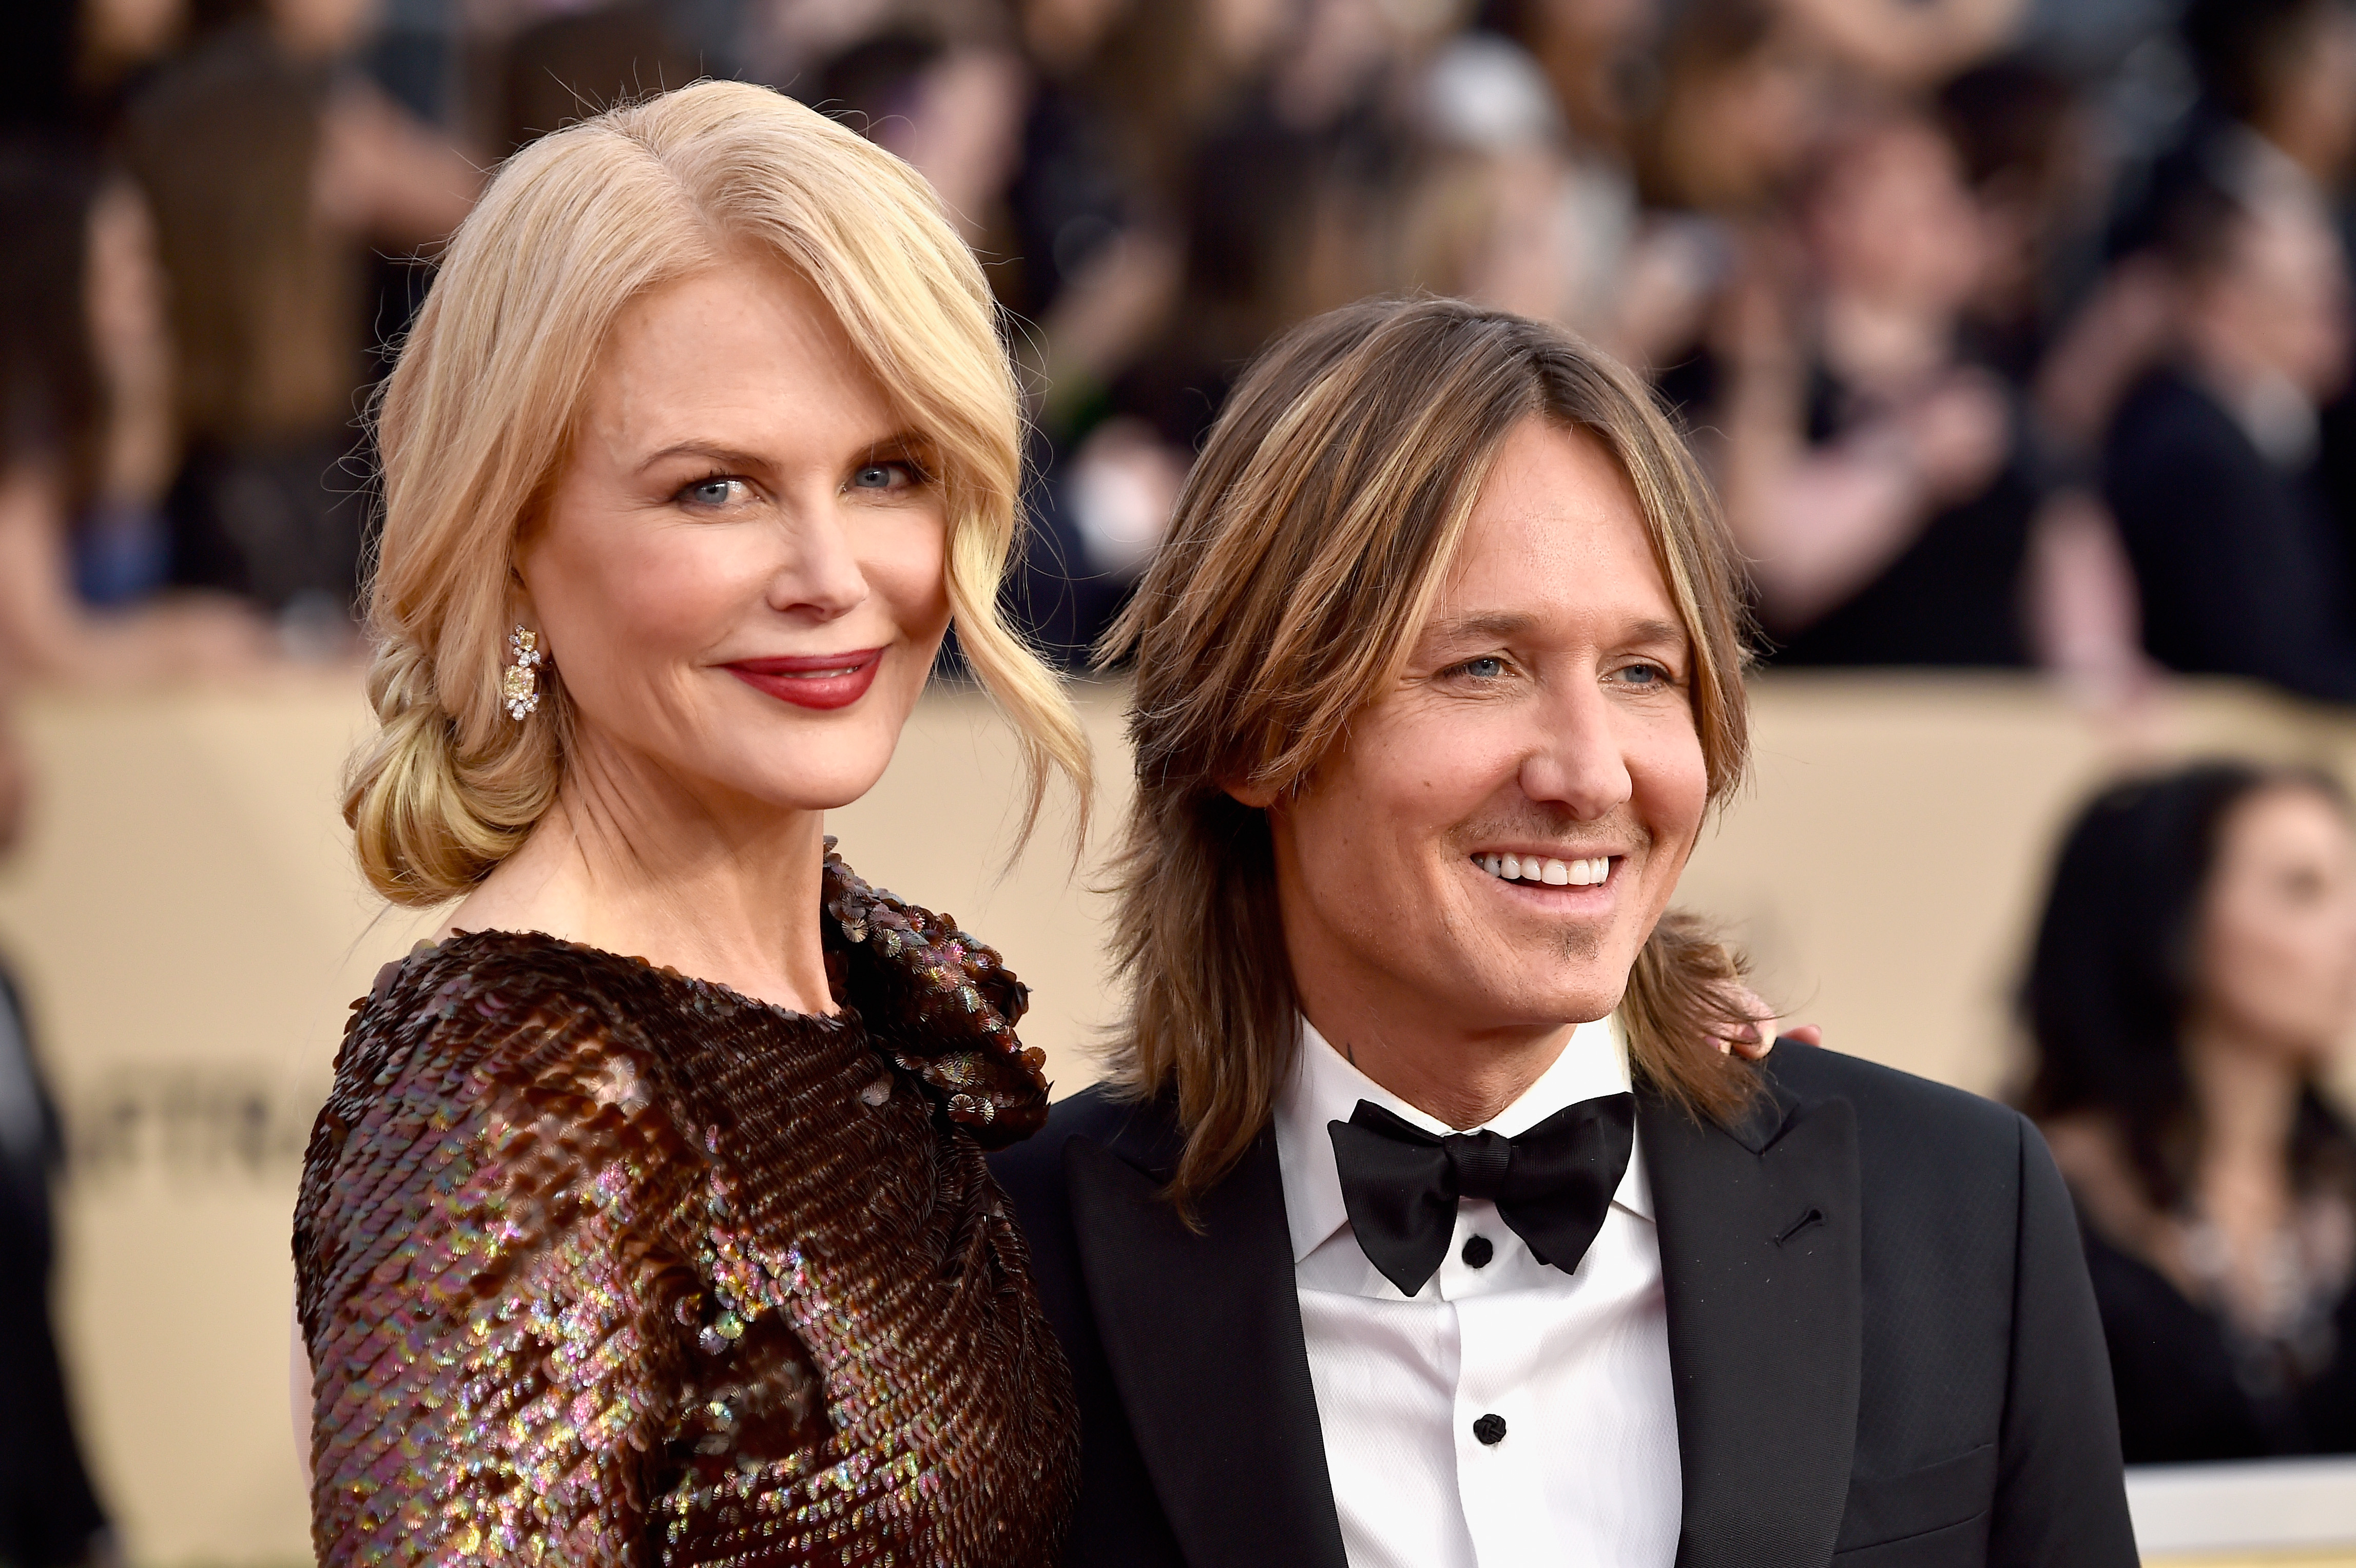 Actor Nicole Kidman (L) and musician Keith Urban attend the 24th Annual Screen Actors Guild Awards at The Shrine Auditorium on January 21, 2018 in Los Angeles, California.